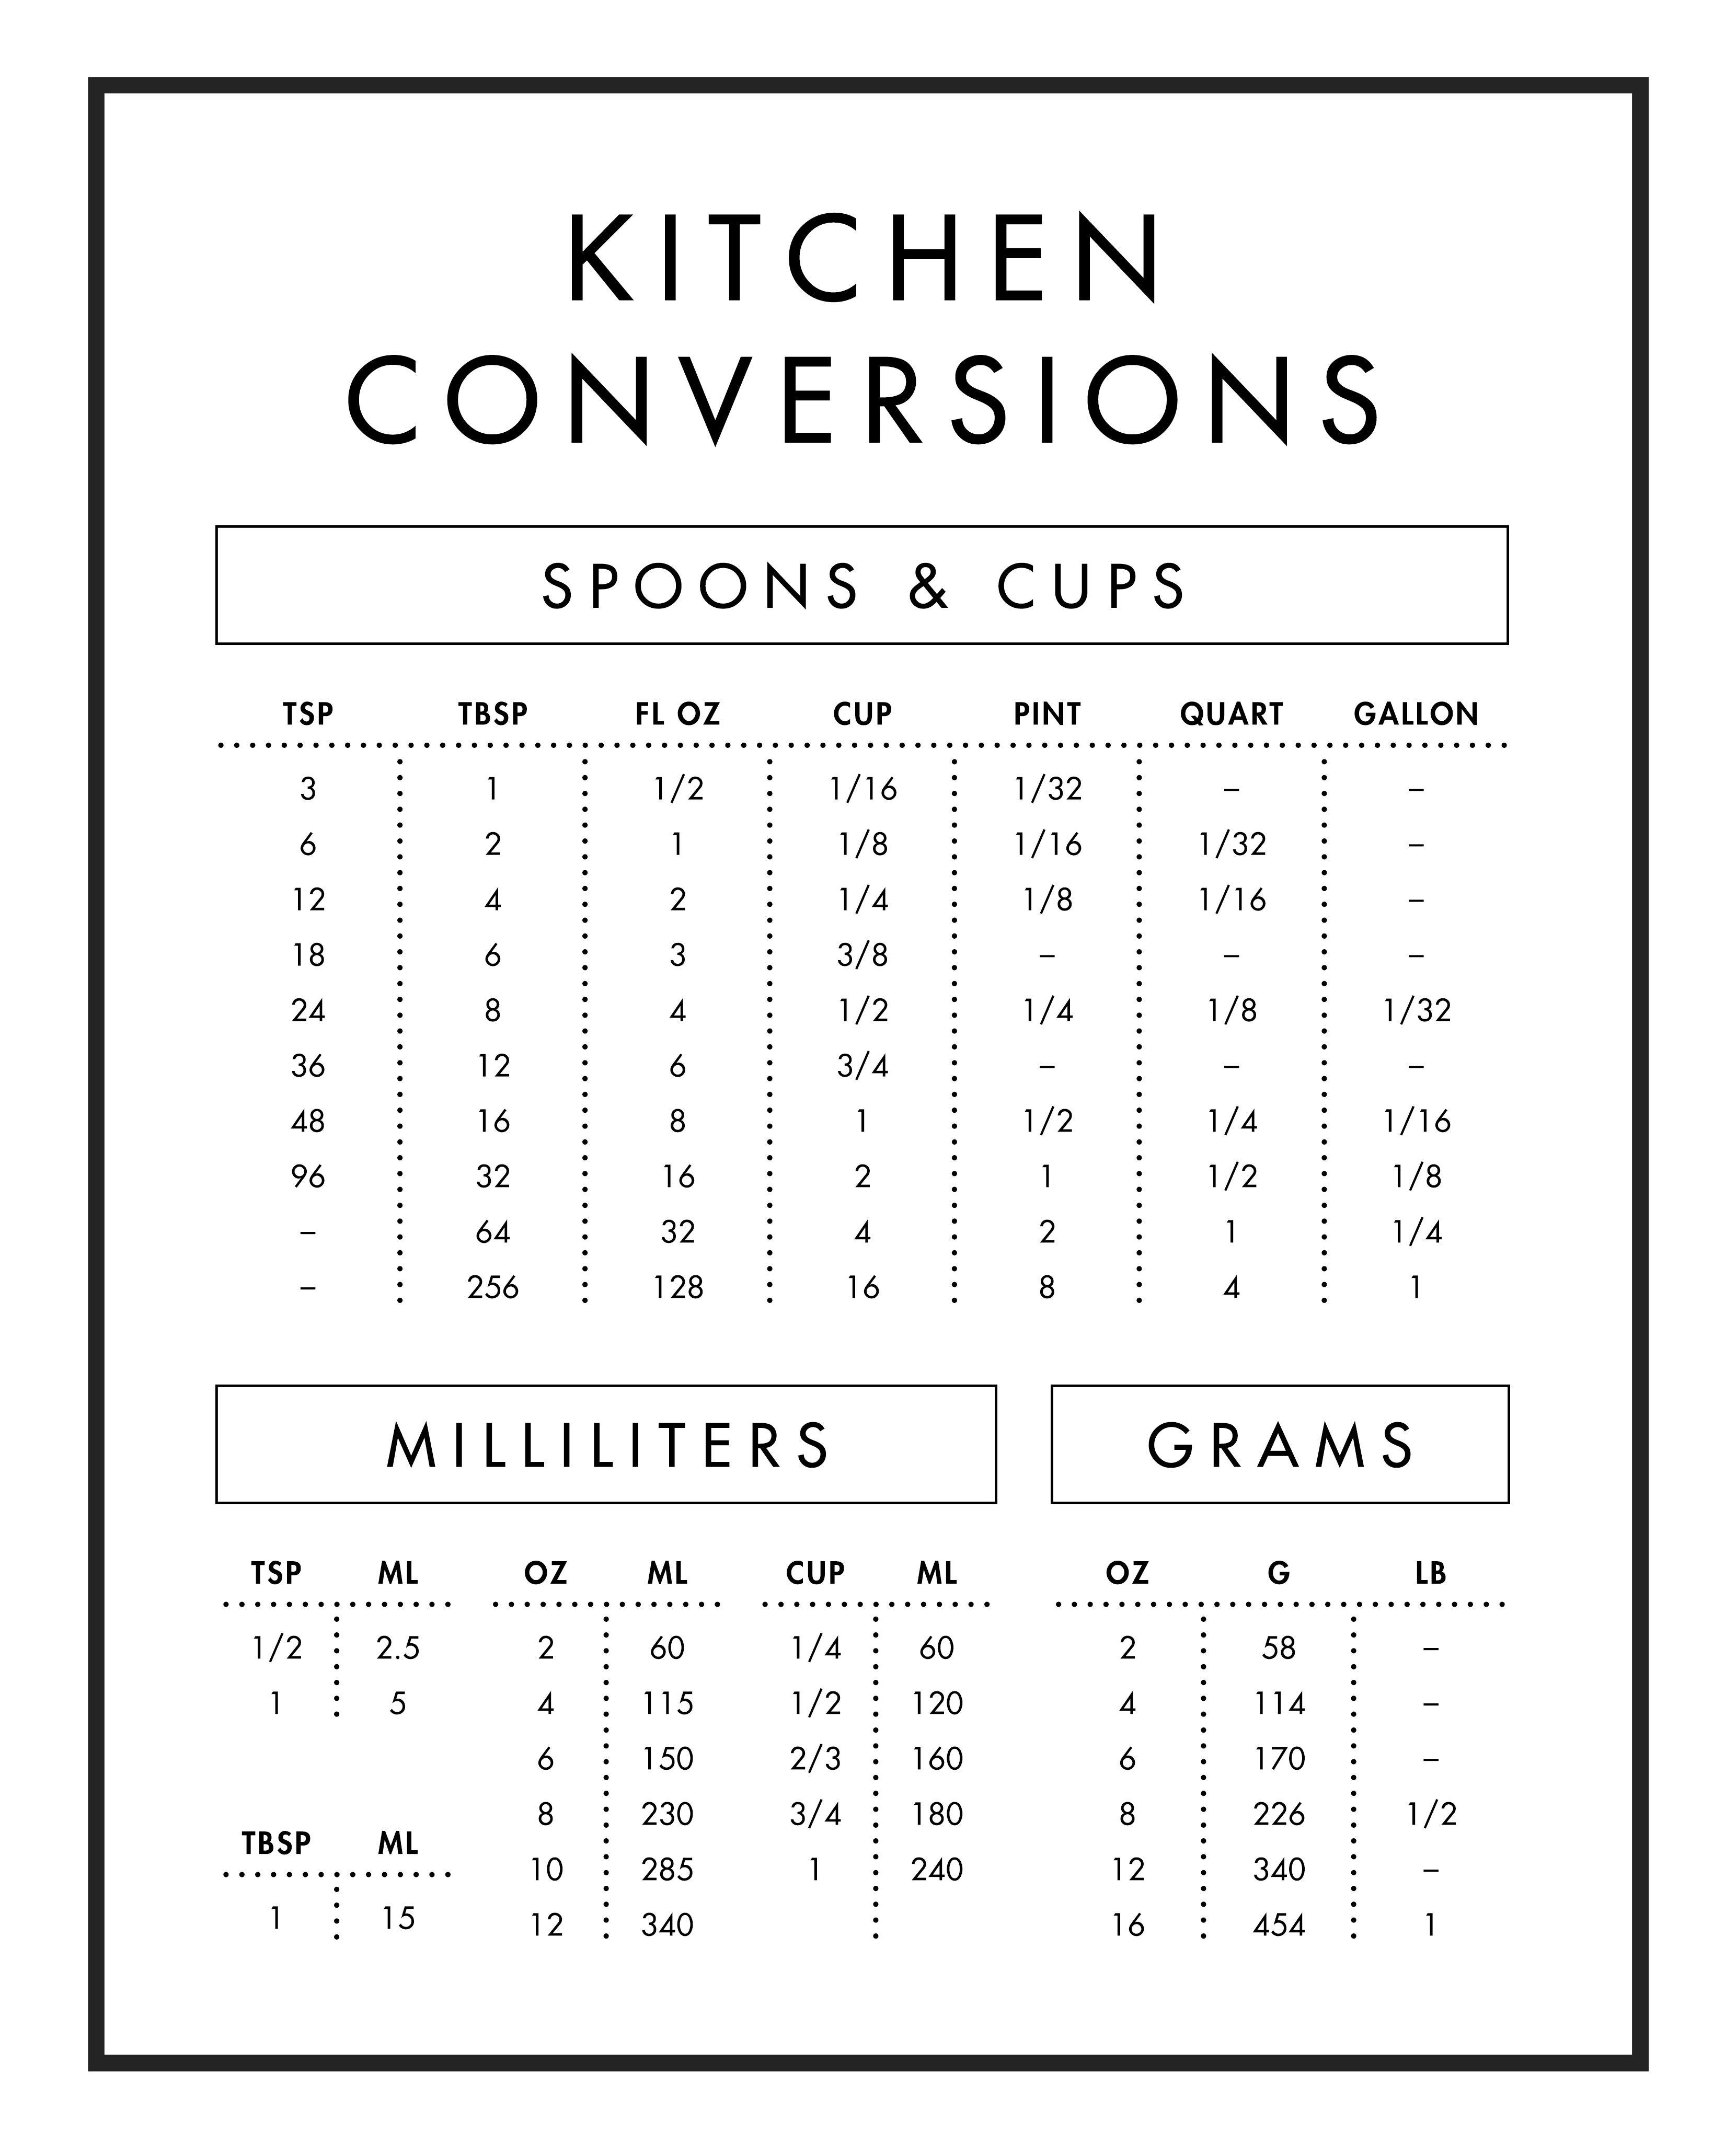 Kitchen Conversion Table from Imperial to Metric